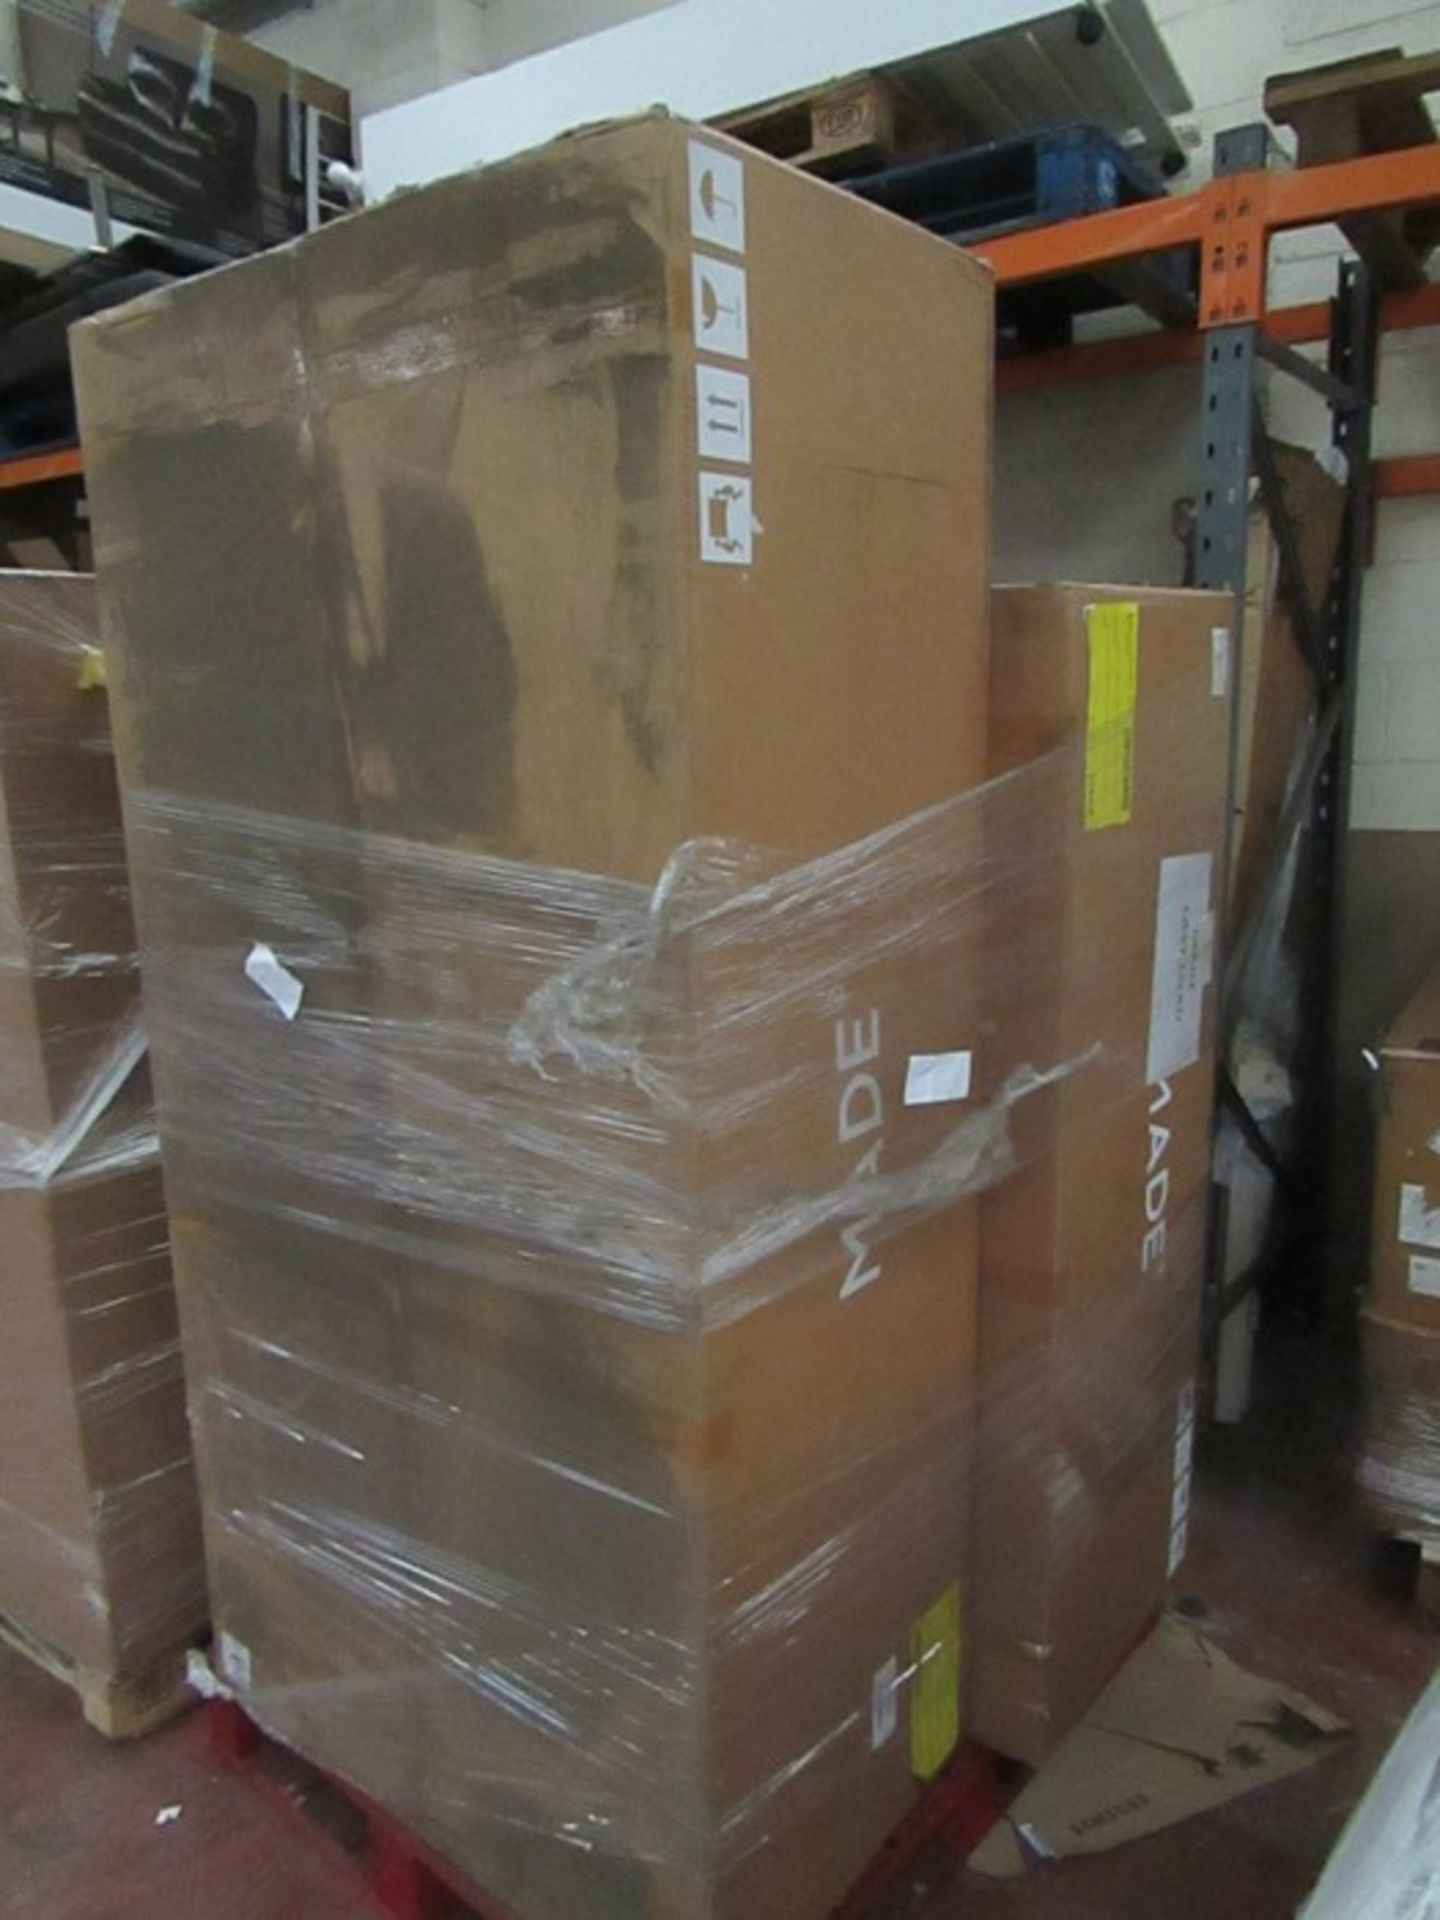   16x   PALLETS OF MADE.COM UNMANIFESTED SOFA PARTS, THESE ARE FROM VARIOUS SOFAS AND DONT APPEAR TO - Image 2 of 34